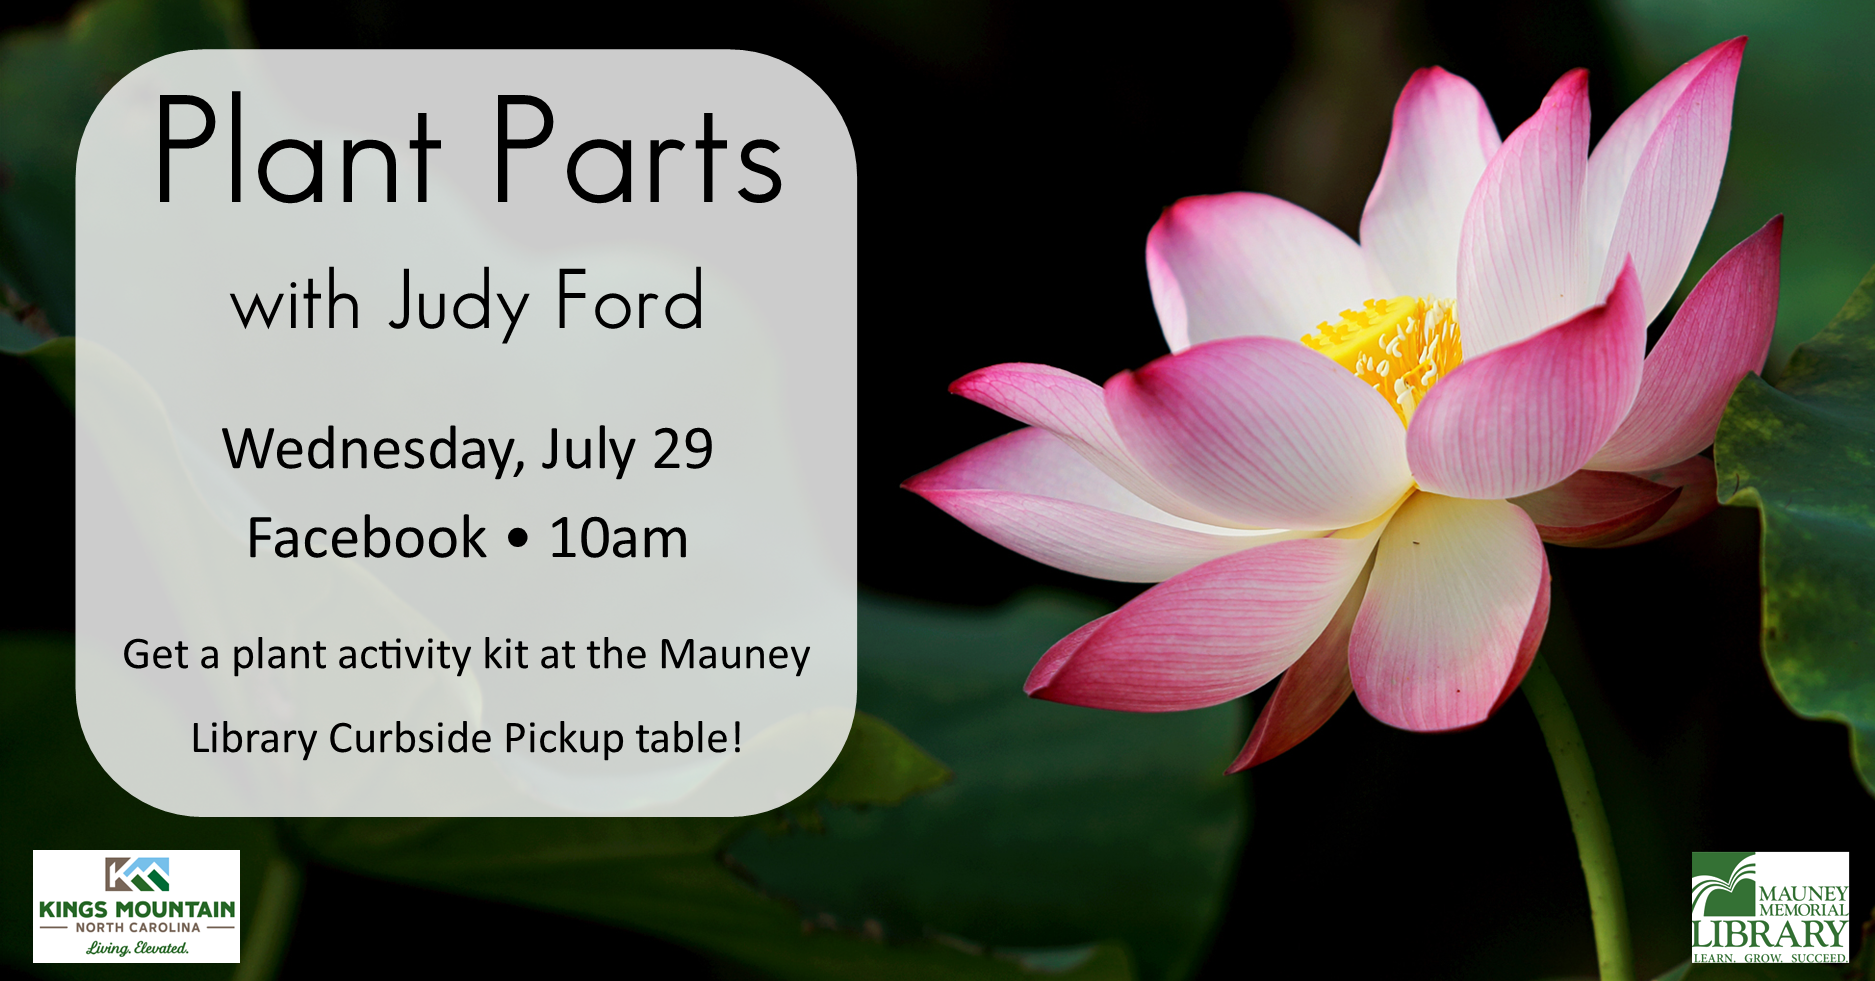 Plant Parts with Judy Ford